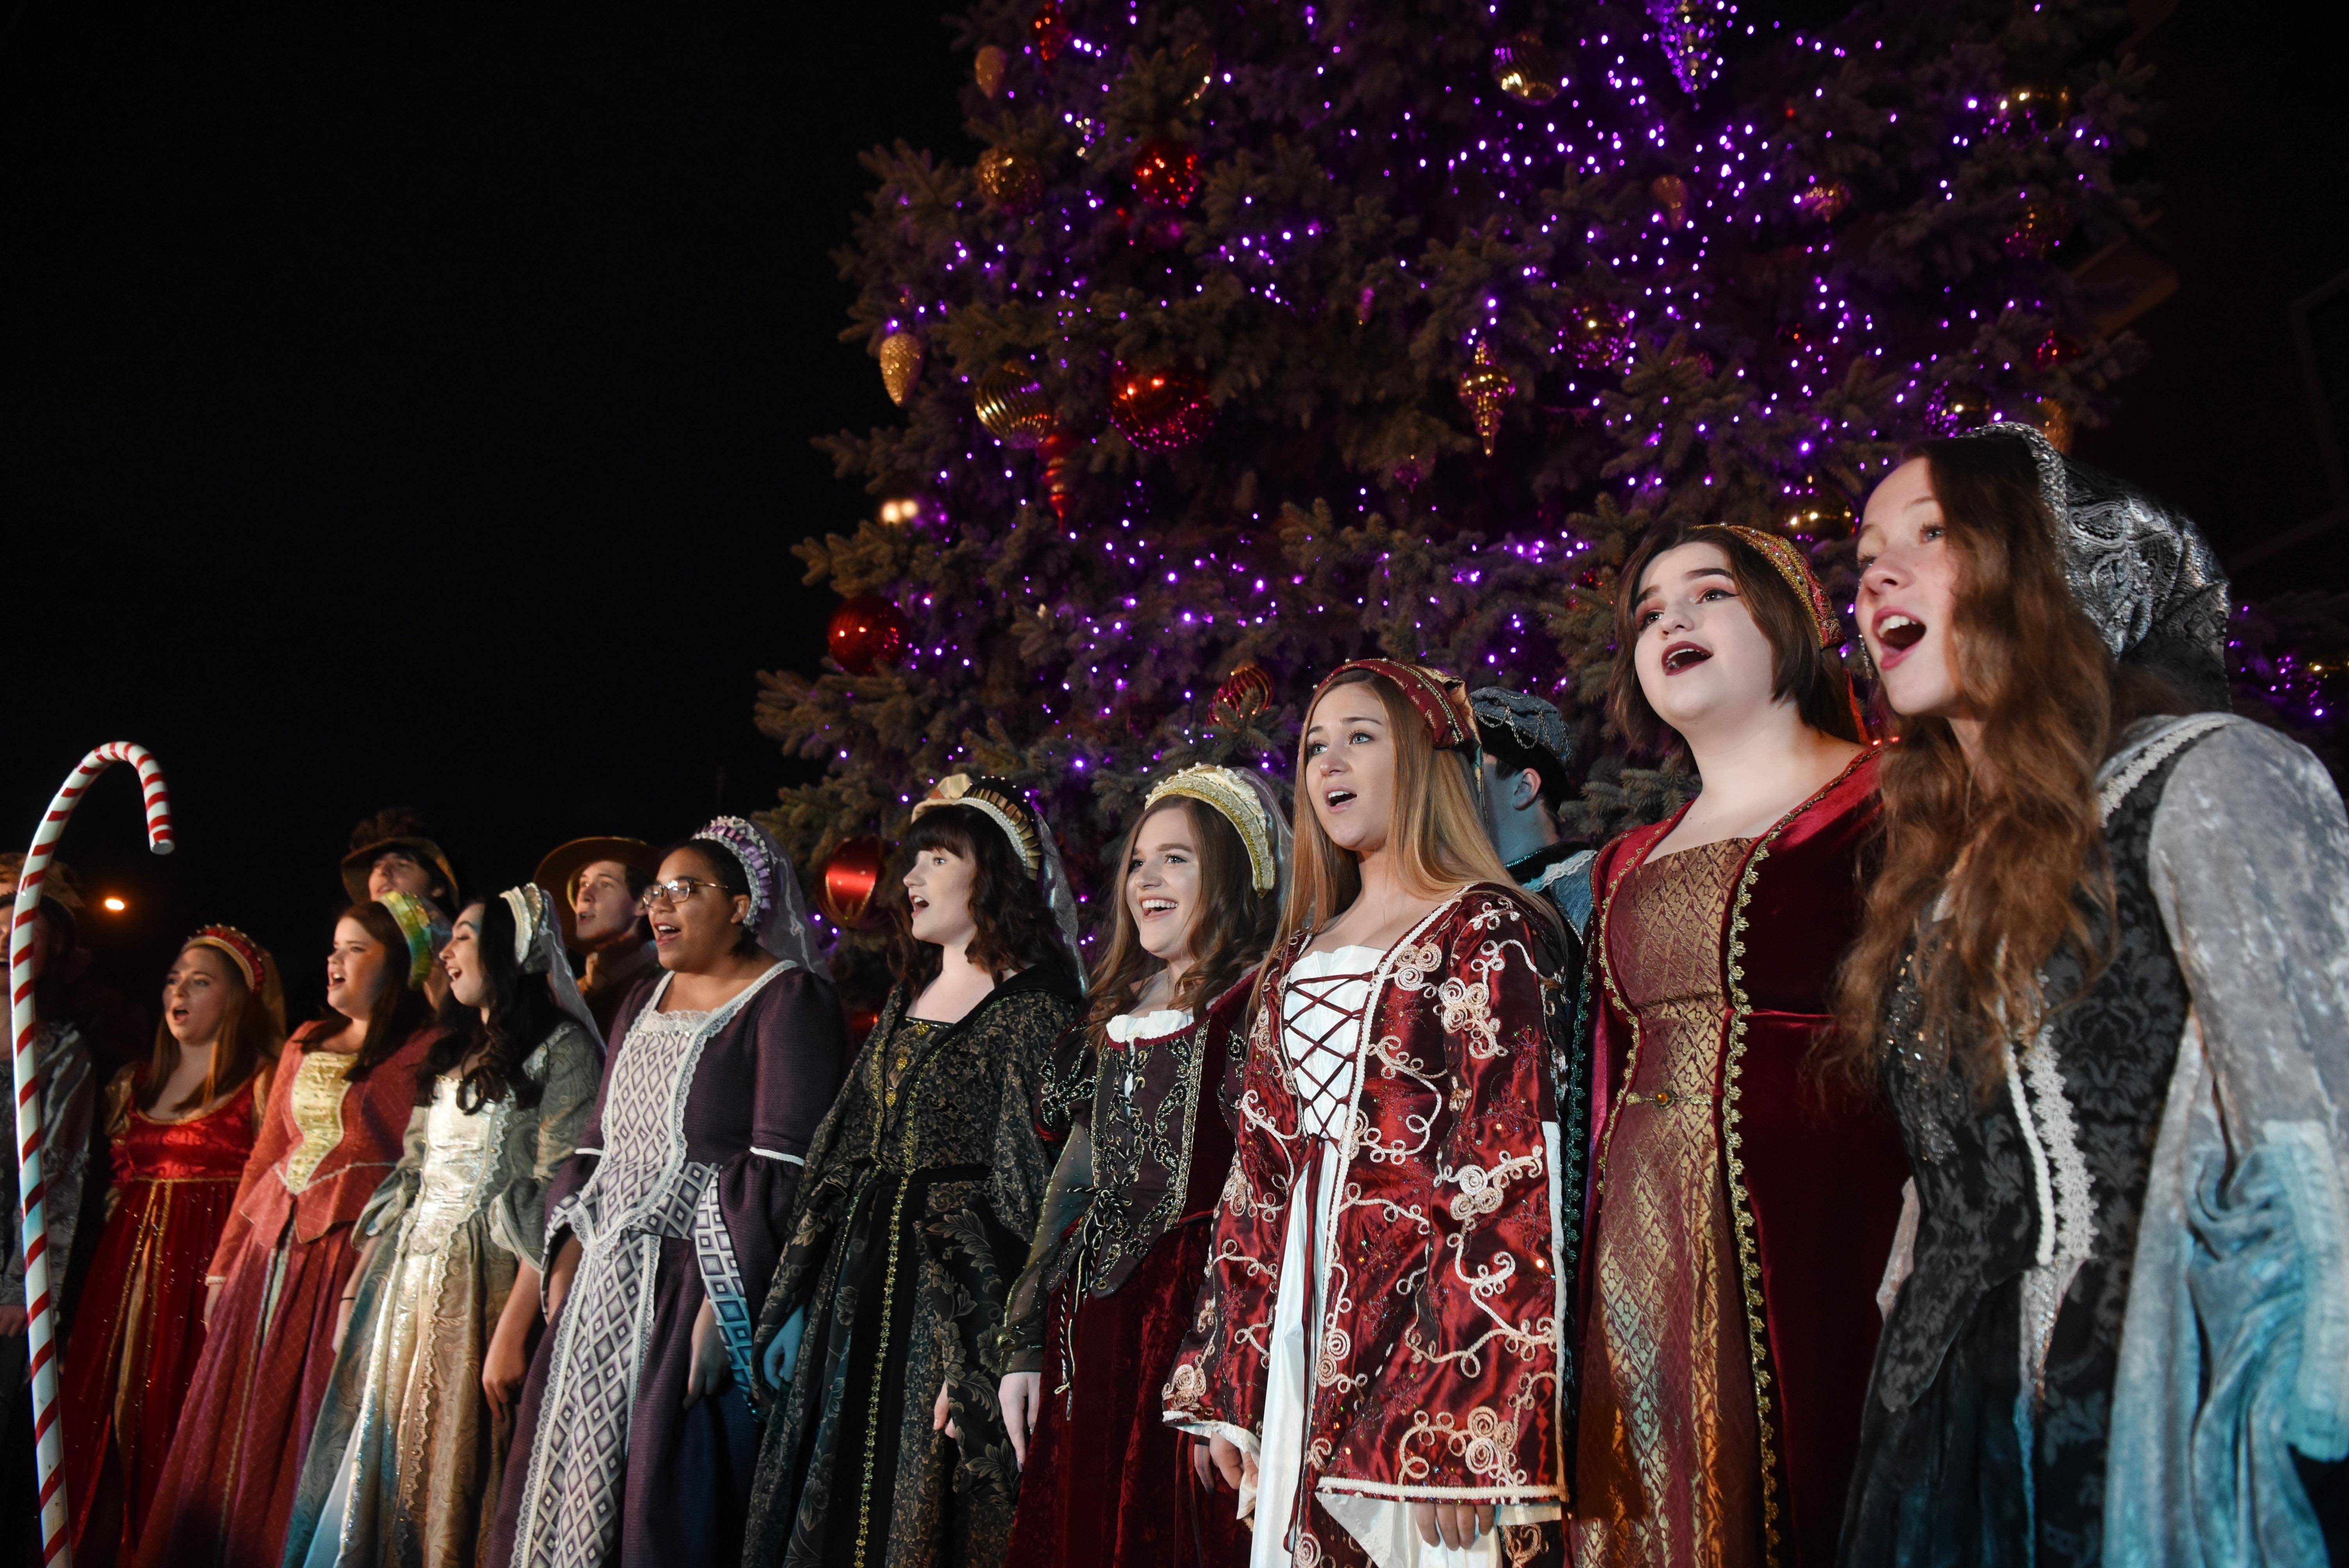 The Prospect High School Madrigal Singers perform during the Mount Prospect tree-lighting ceremony Wednesday near village hall.